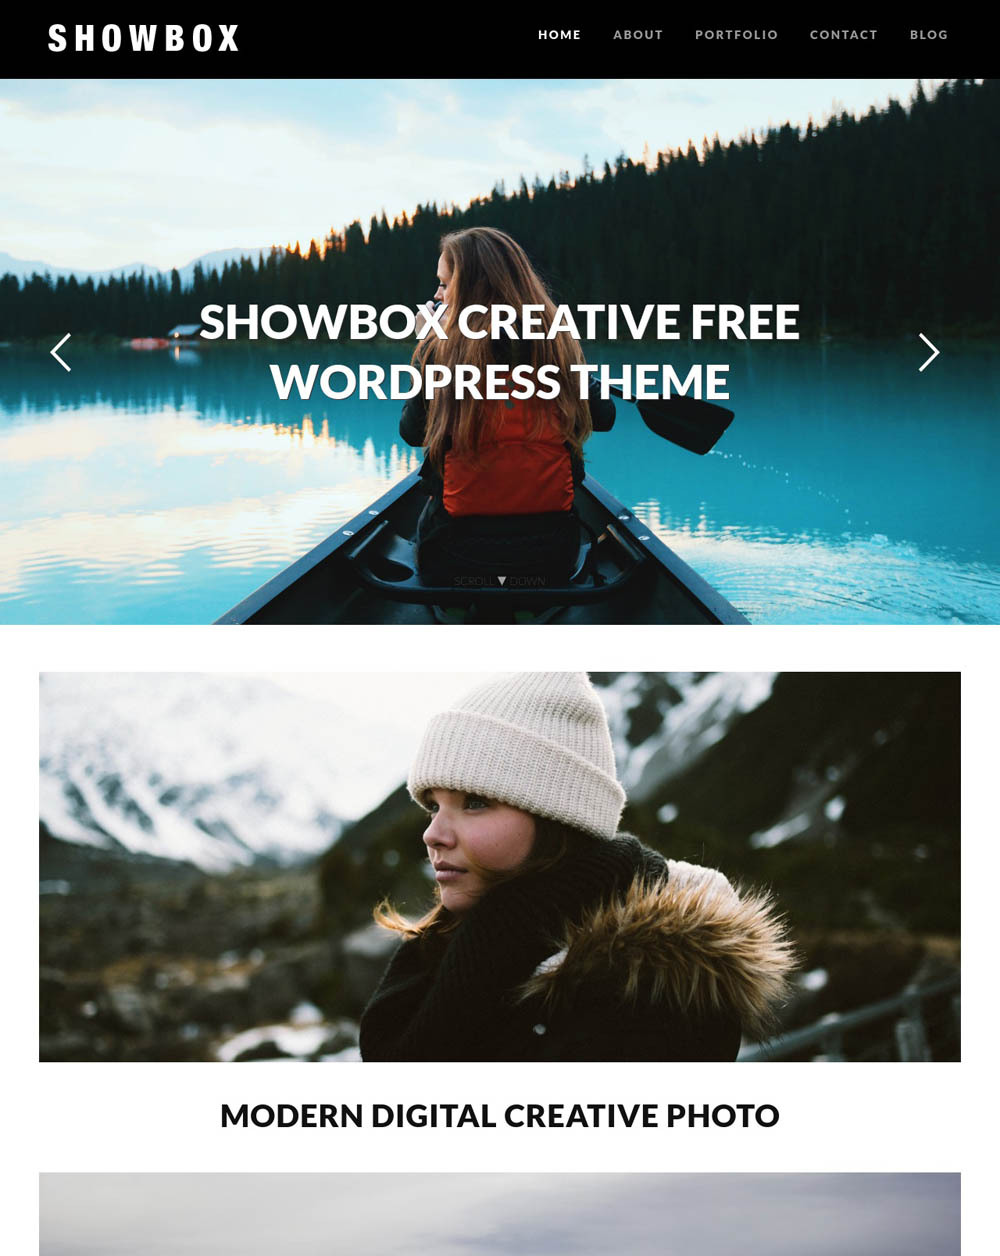 Showbox WordPress Theme for designers